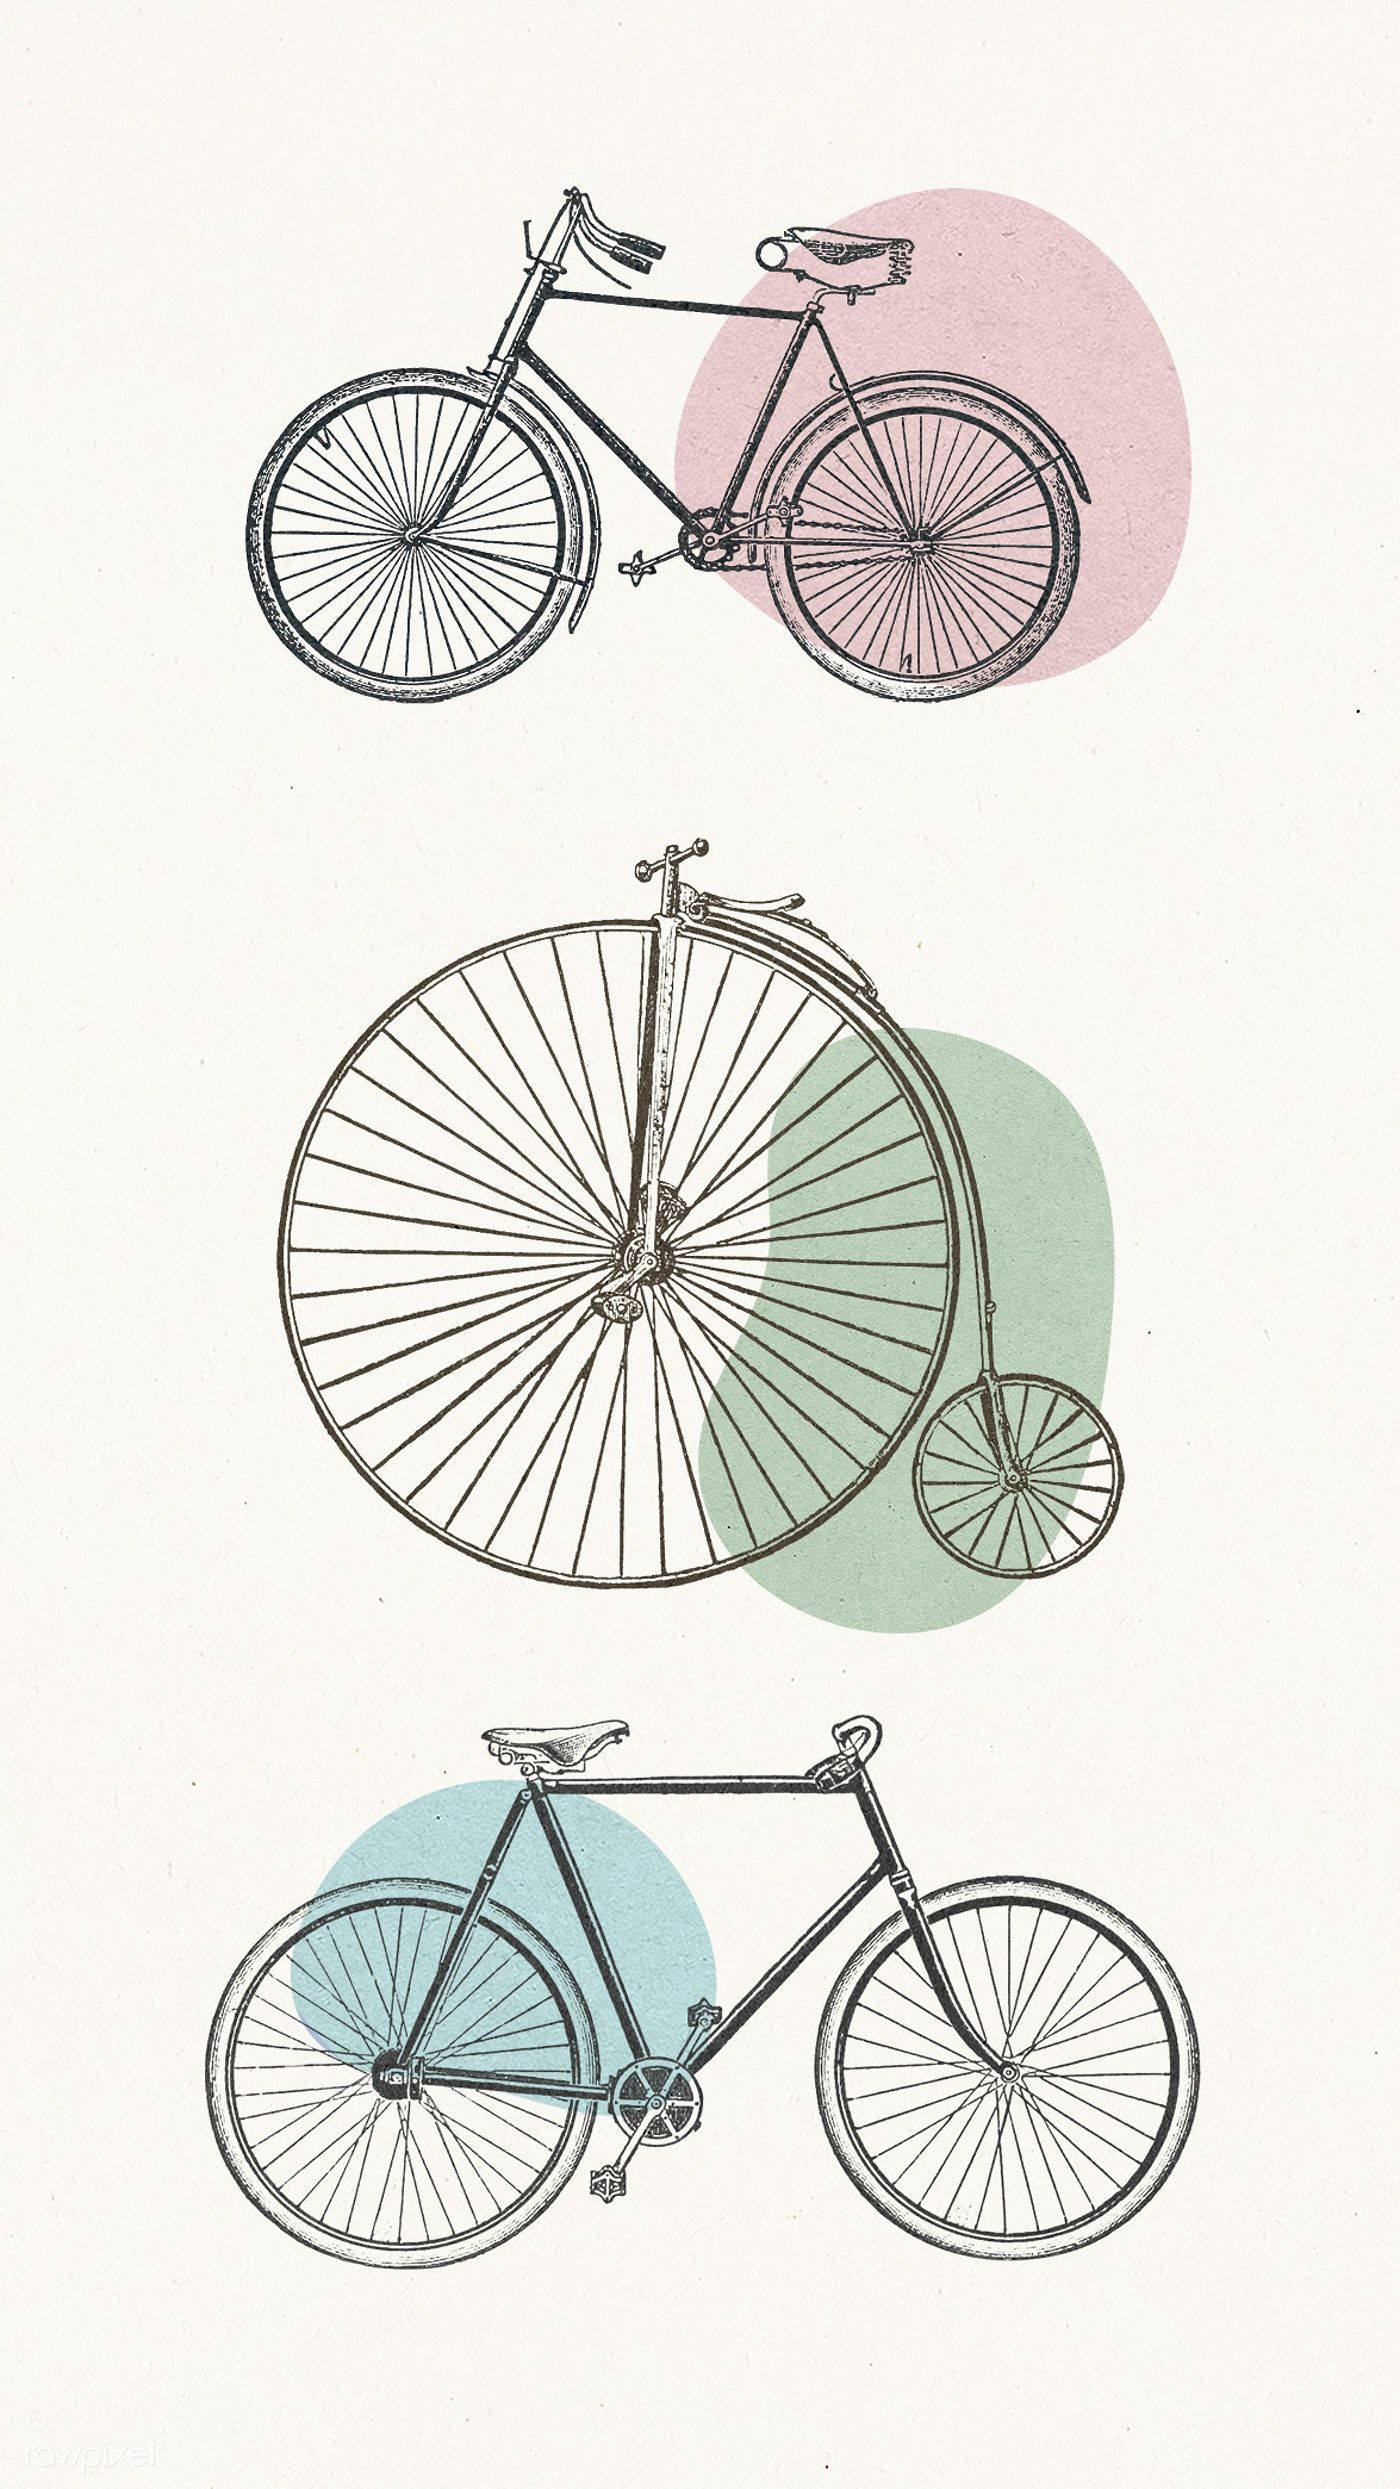 Vintage Bicycle Engraving Collection Illustrations Premium Image By Rawpixel Com Adj Hwangmangjoo Bicycle Illustration Bicycle Tattoo Bicycle Photography